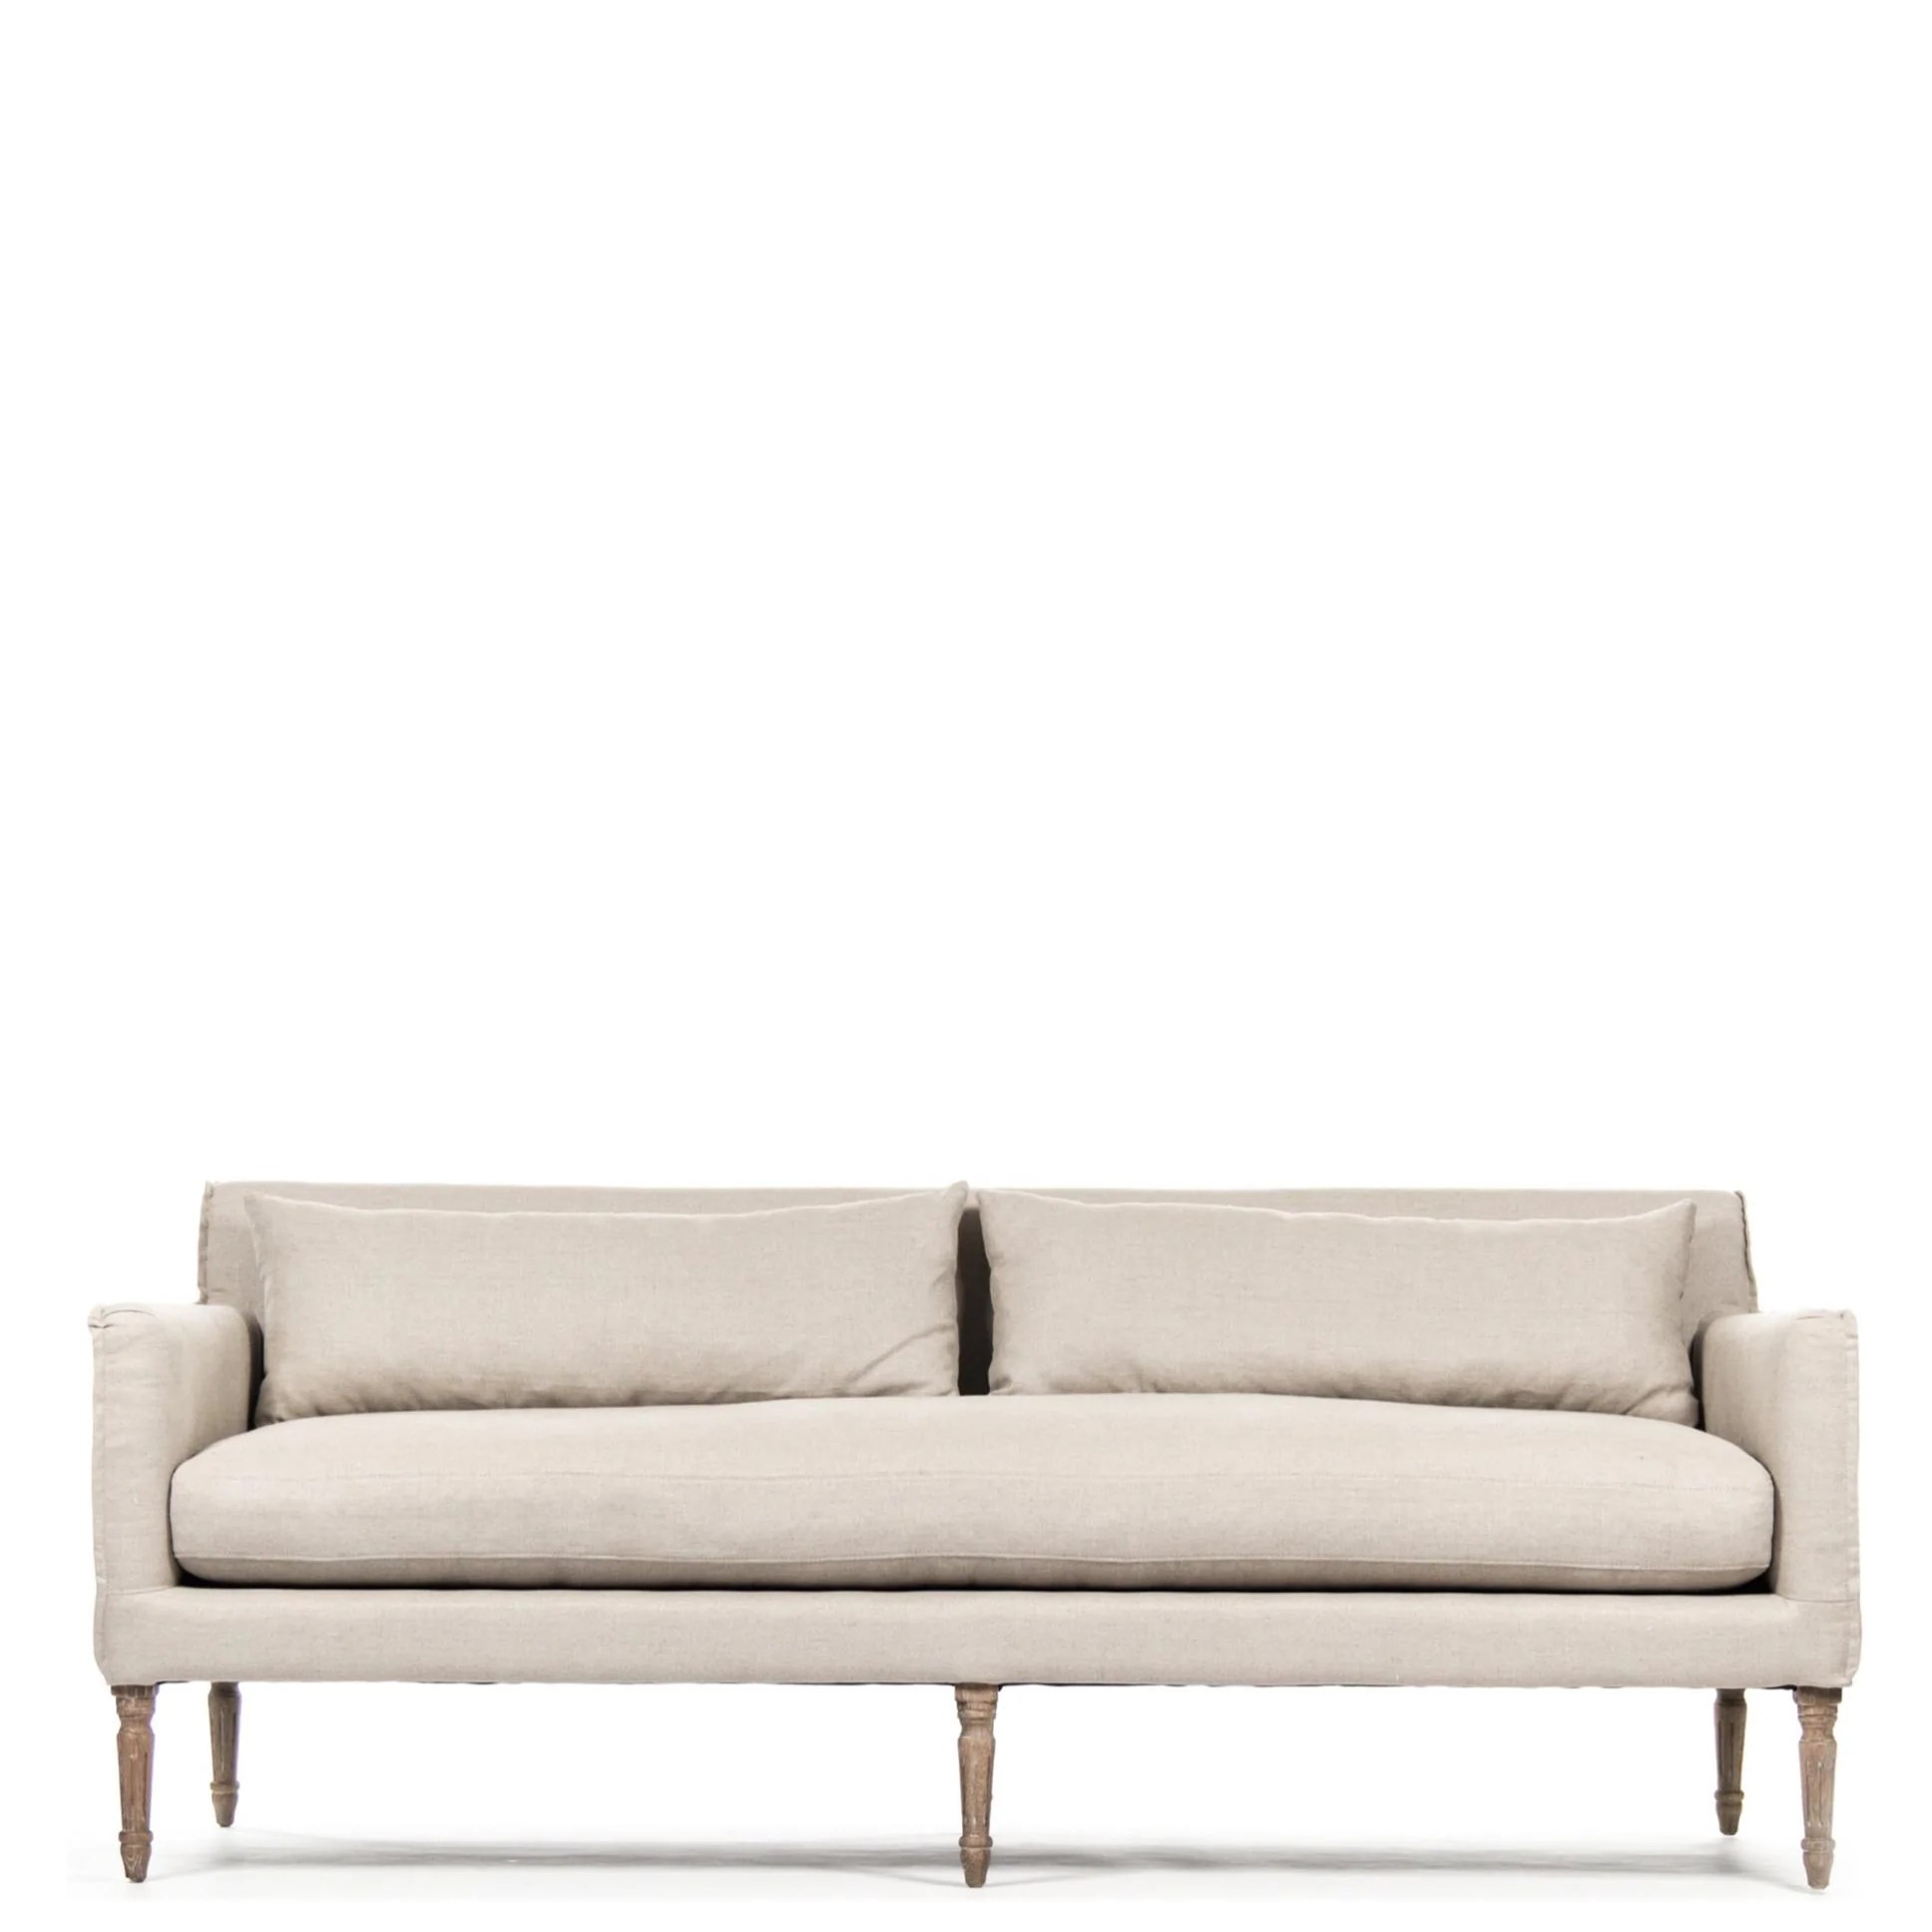 Jensen Sofa Bed Next Jensen Sofa Sarah Virginia Home